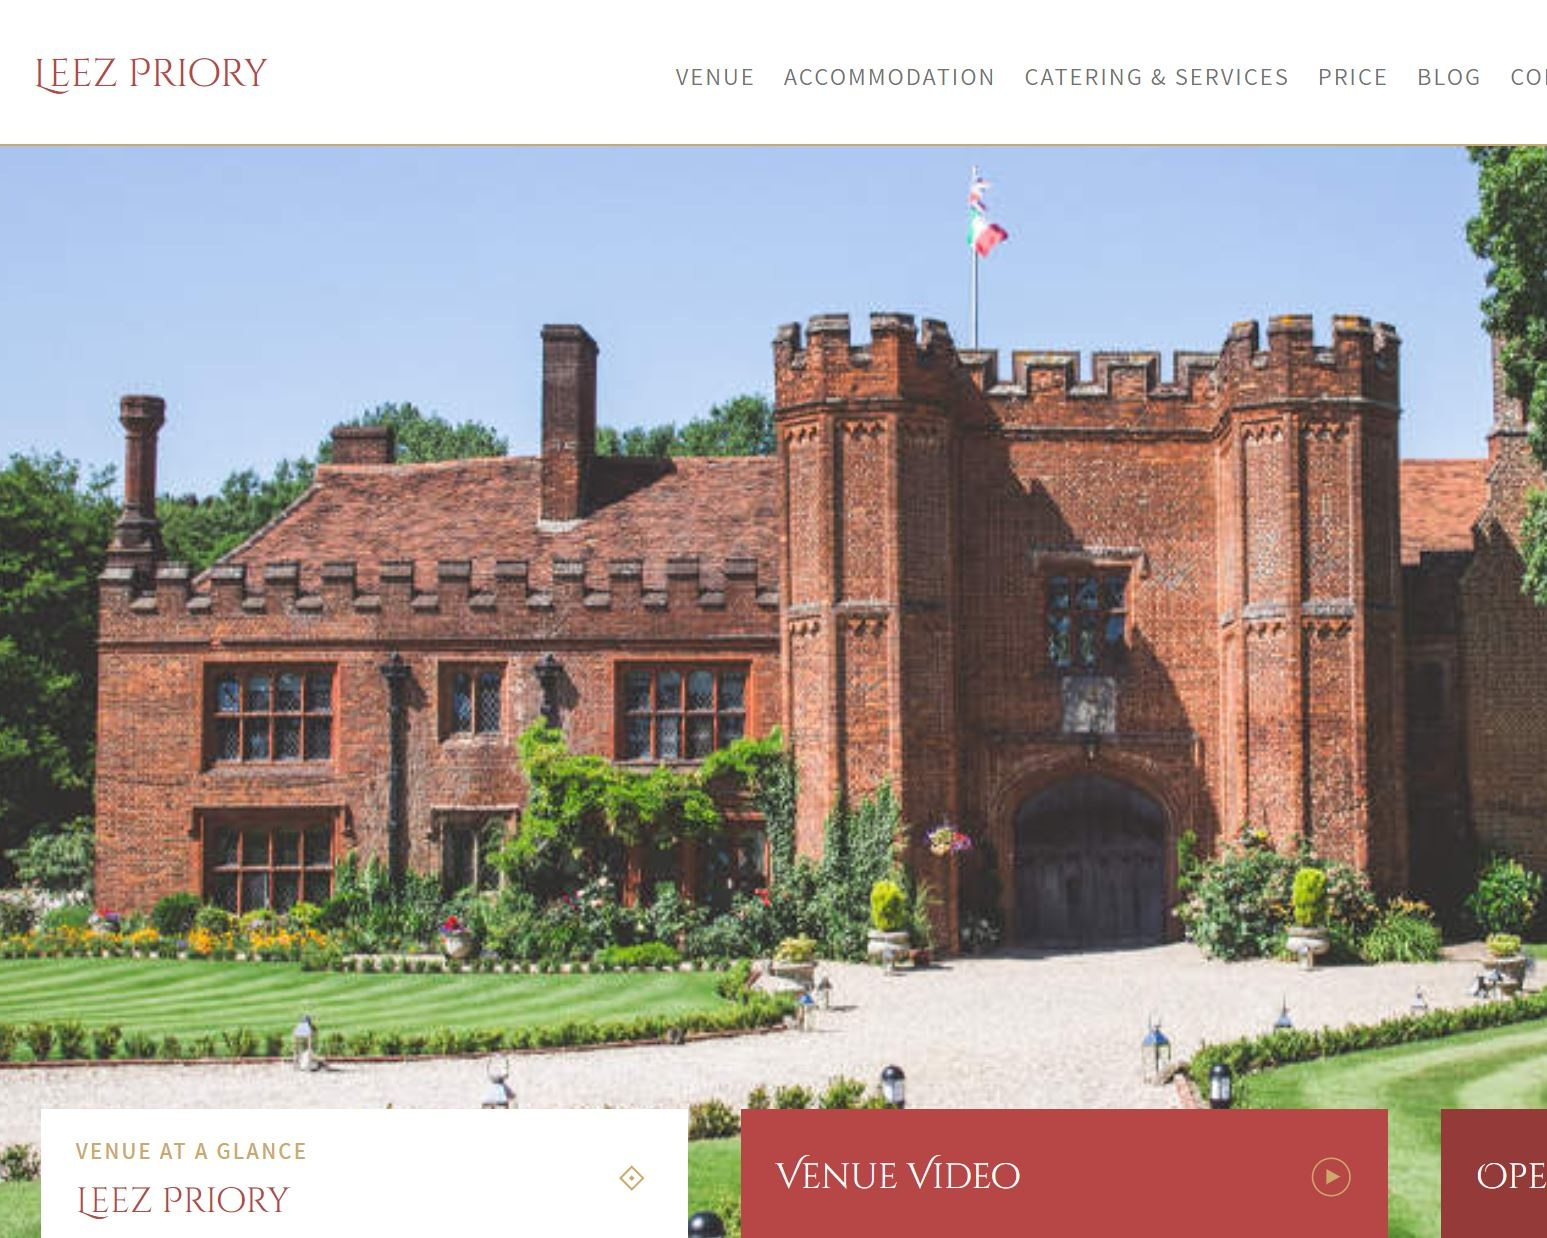 Leez Priory - A wedding at Leez Priory comes with over 25 years' experience. Nestled in the glorious Essex countryside, this Tudor manor house is exclusively yours and all just over an hour away from Central London.